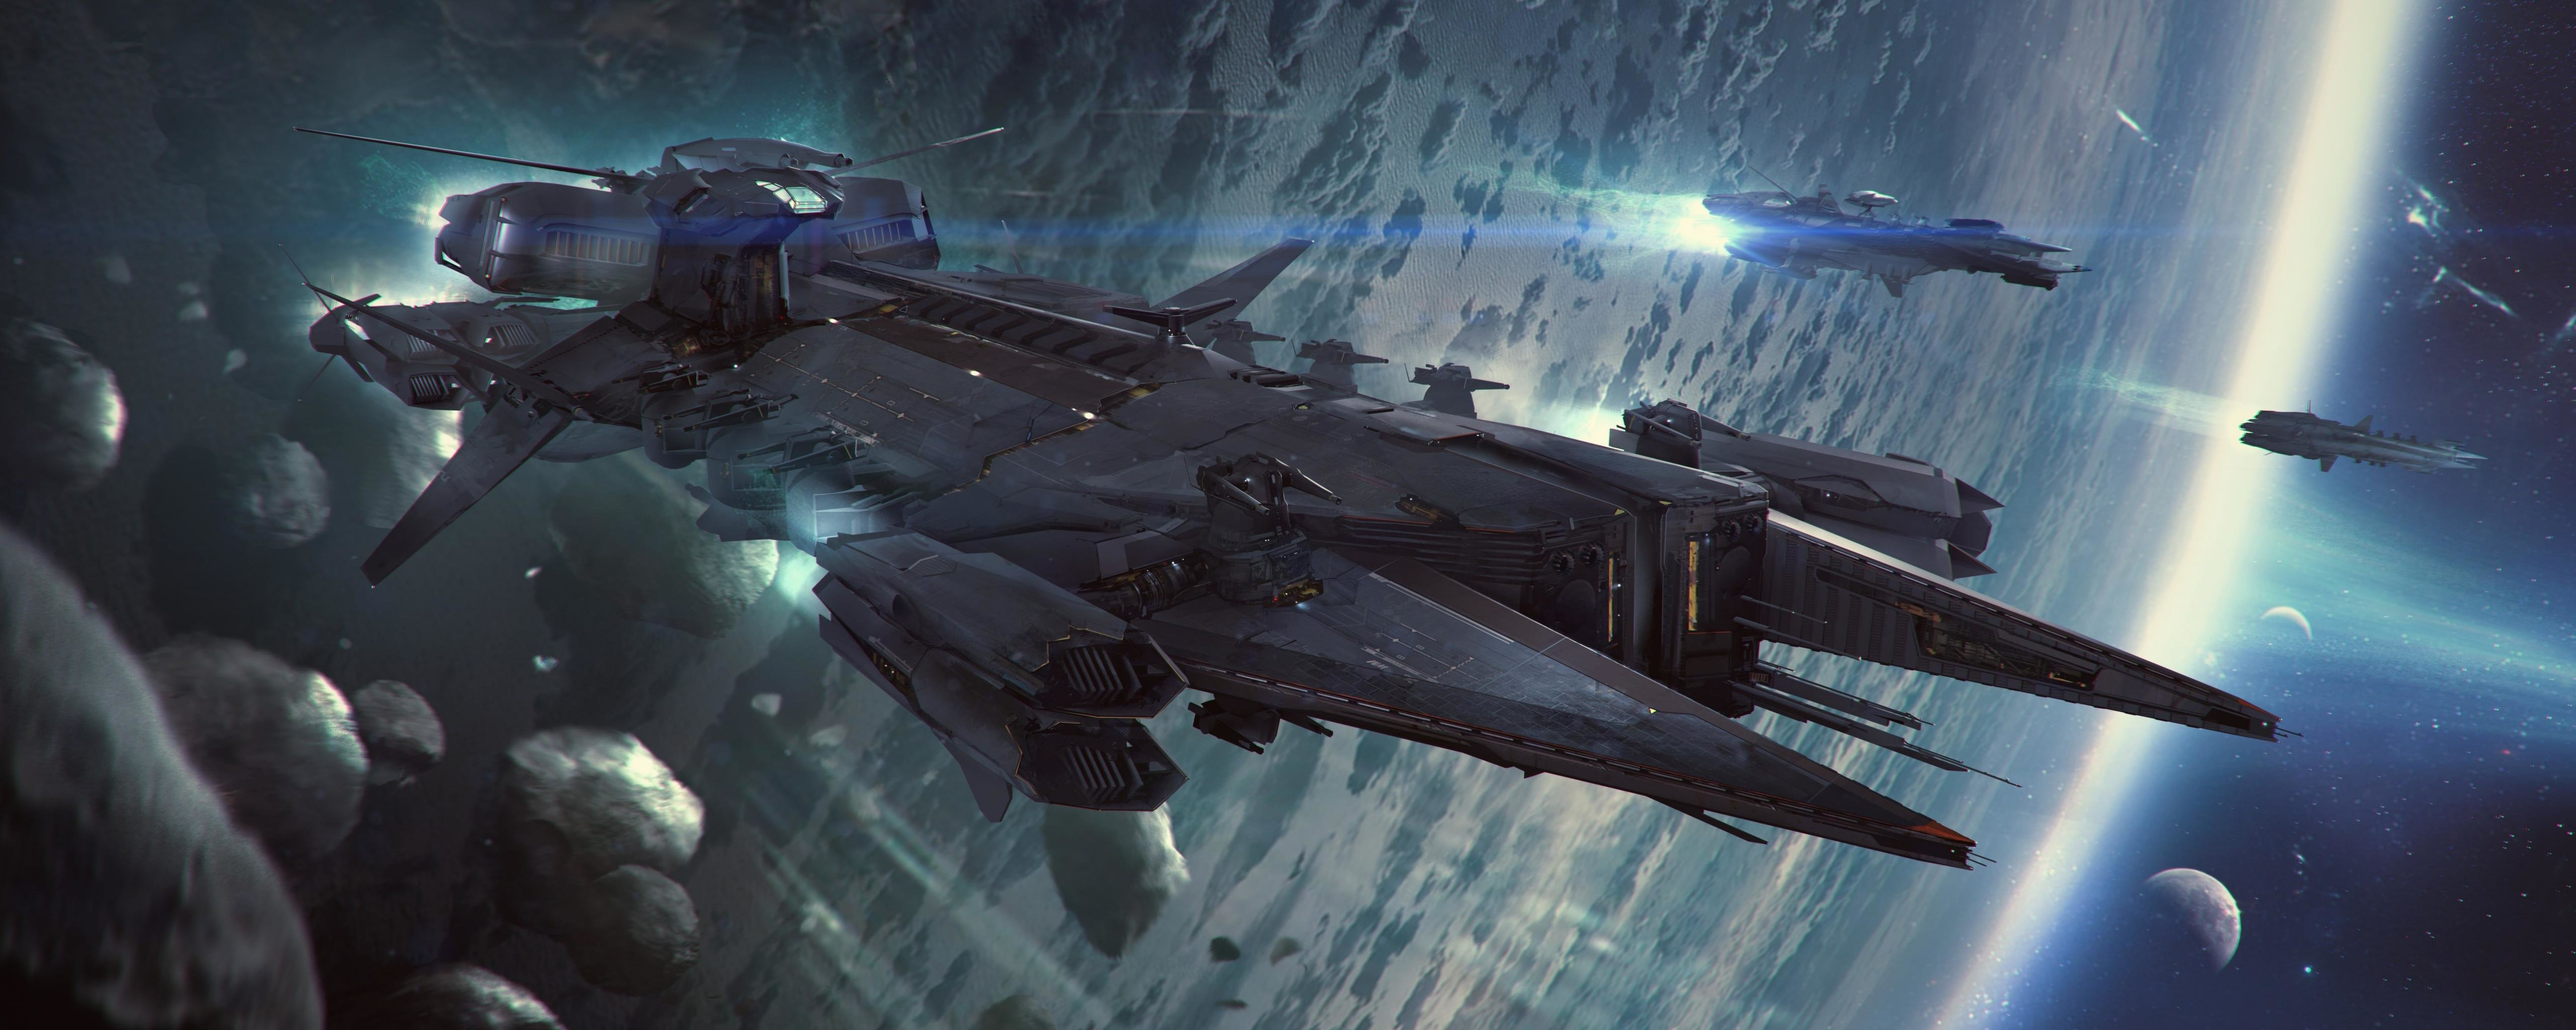 Free Star Citizen High Quality Wallpaper ID244819 For Dual Screen 5120x2048 Computer